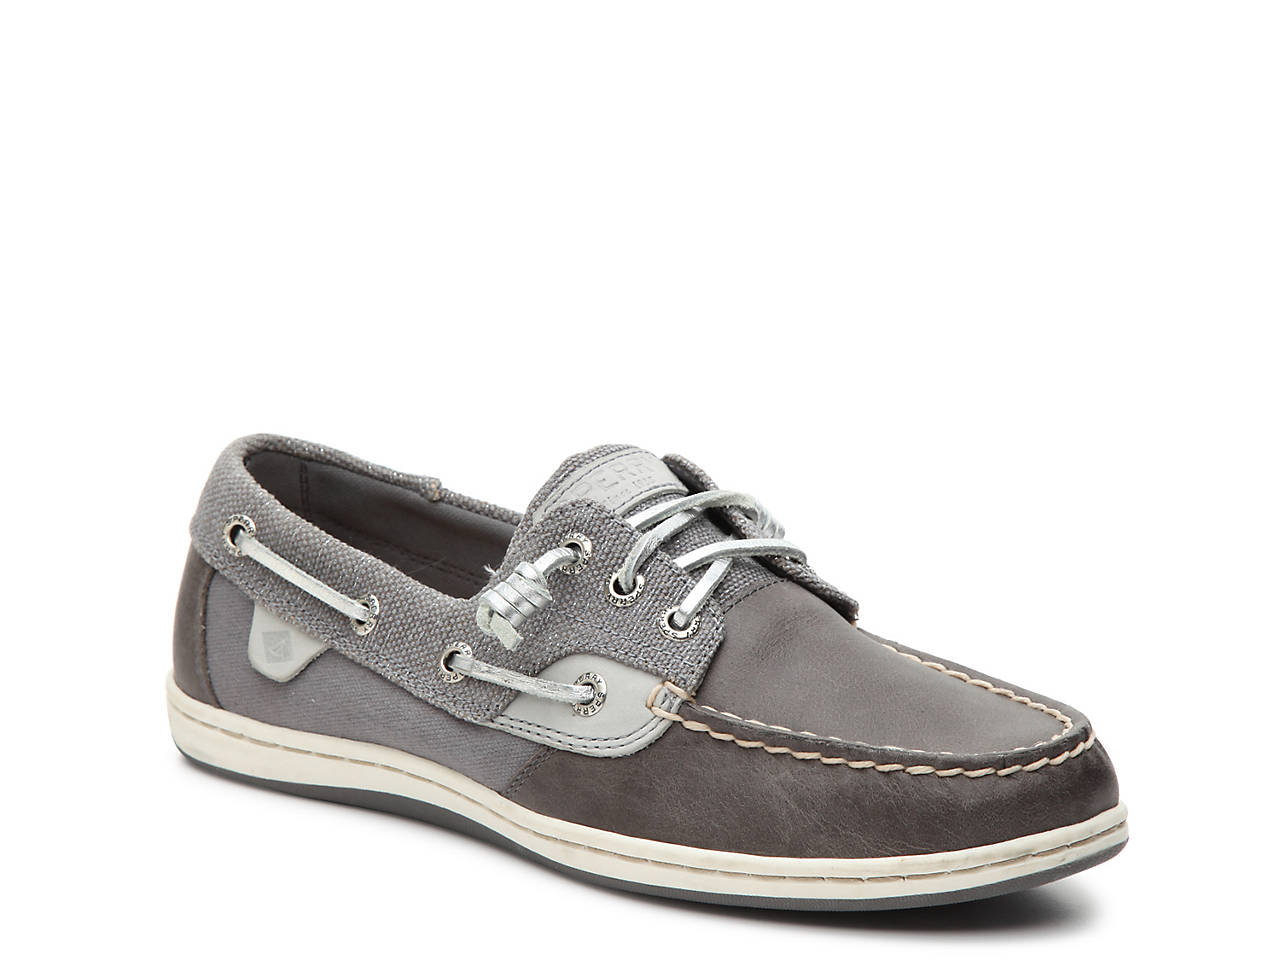 57a58c5ce654 Sperry Top Sider Fish Sparkle Boat Shoe Women S Shoes Dsw